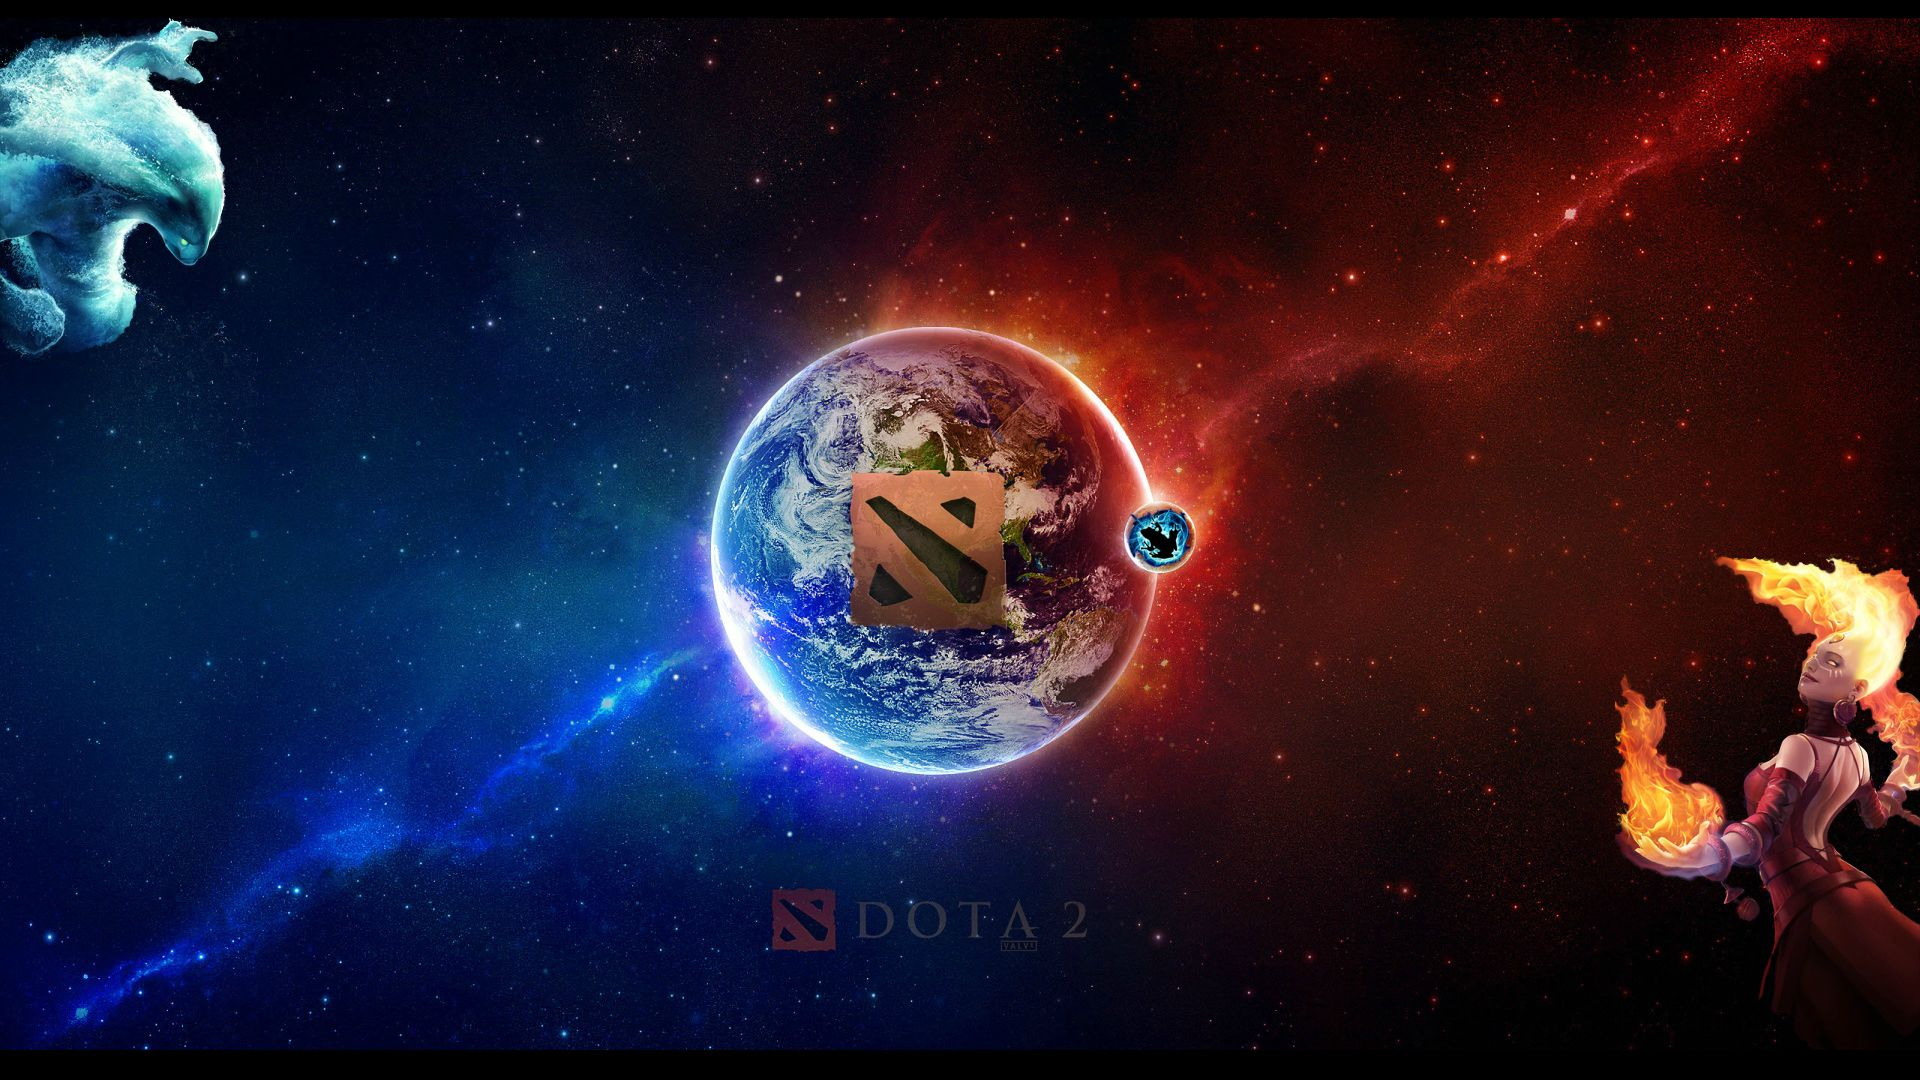 world of dota